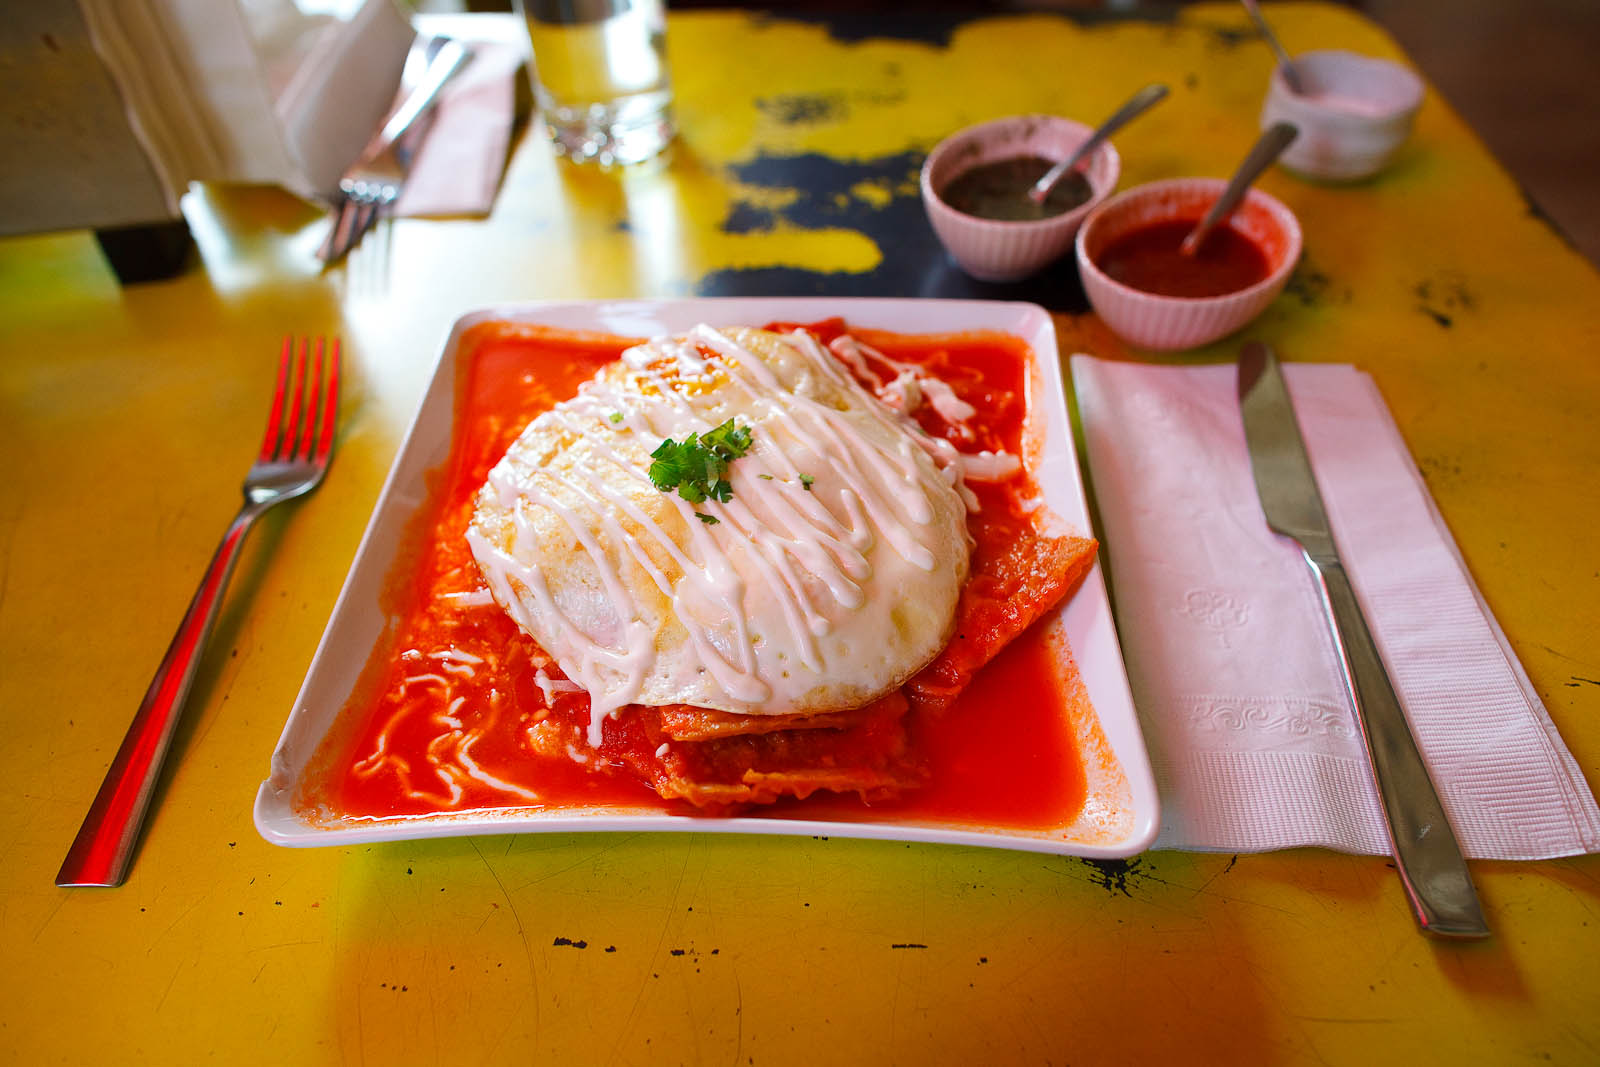 Chilaquiles rojos con huevo (Tortilla, red salsa, egg, fresh cheese, sour cream) ($8)